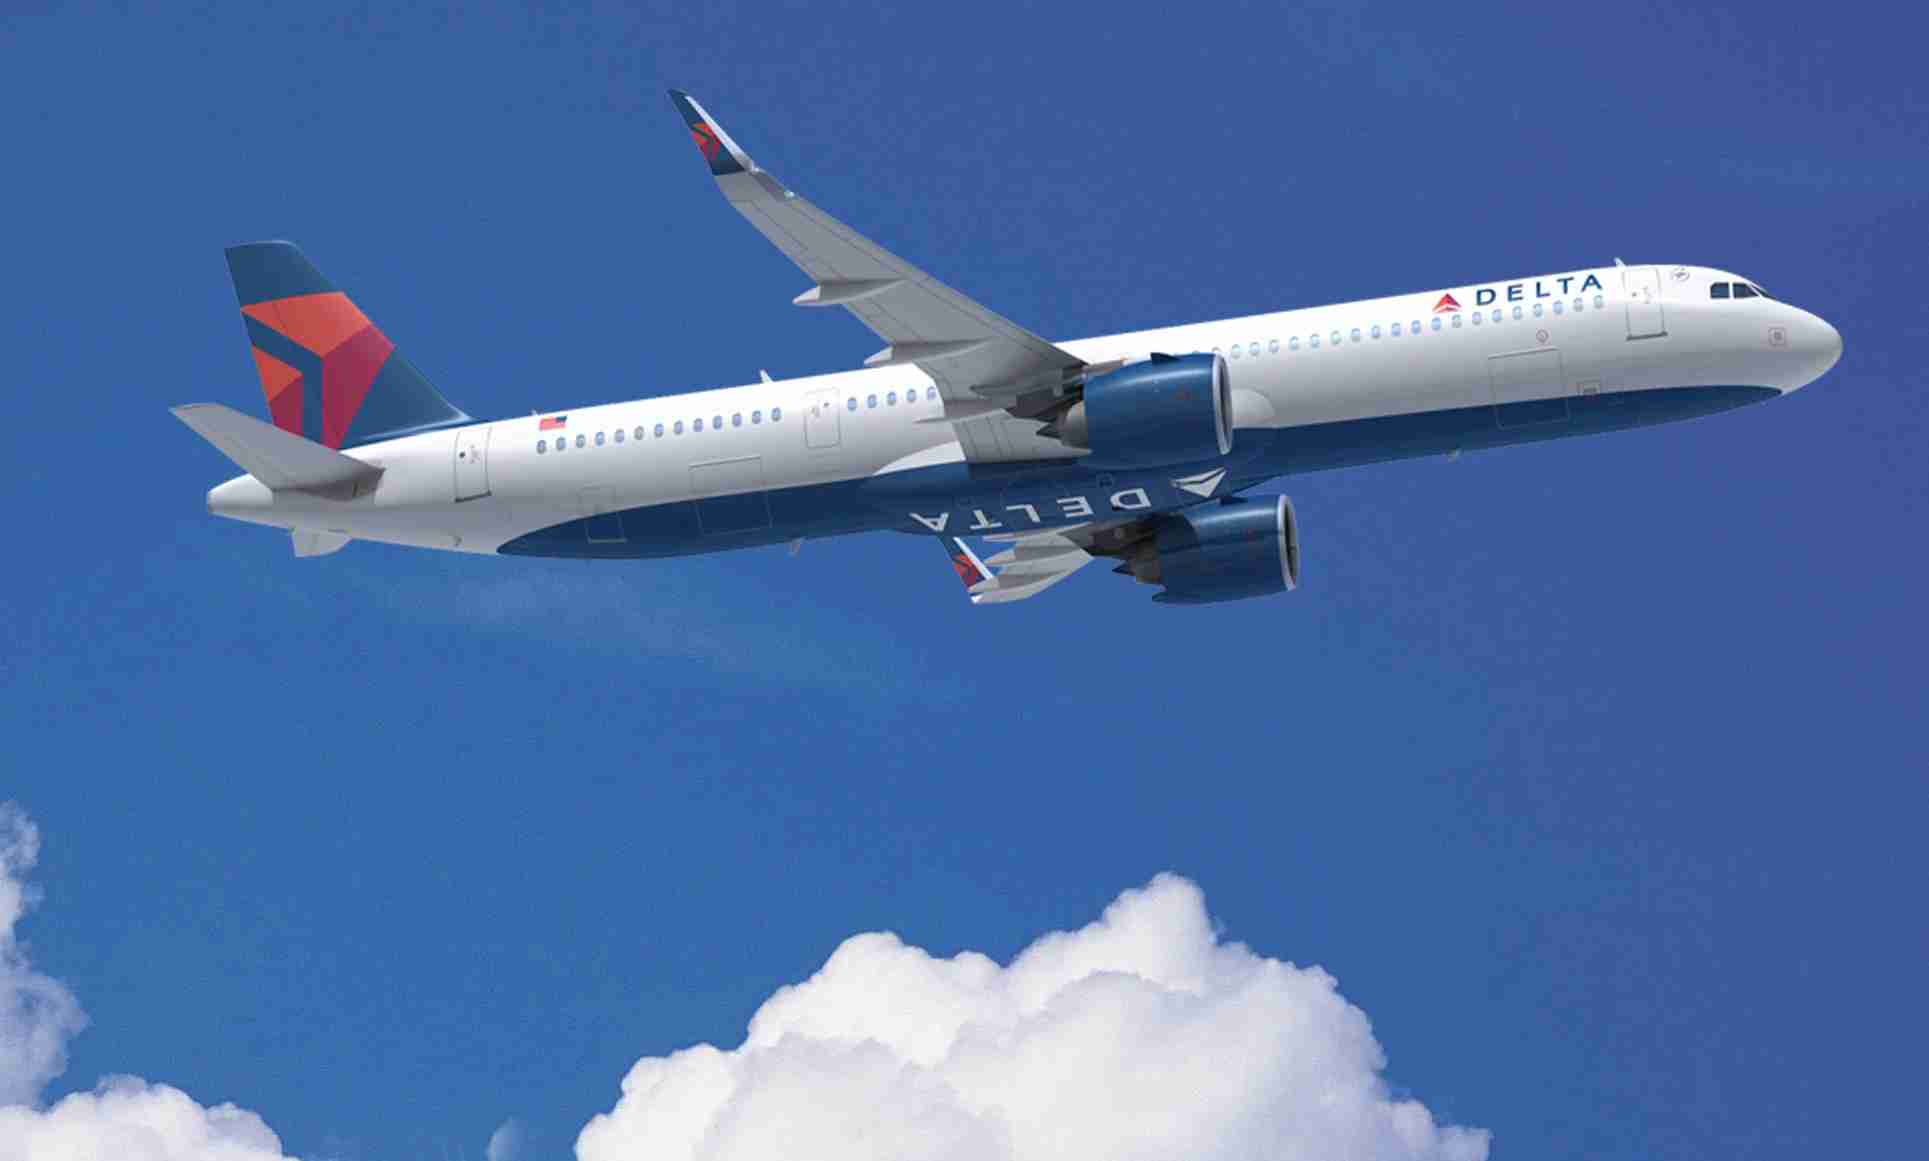 Delta A321neo flying